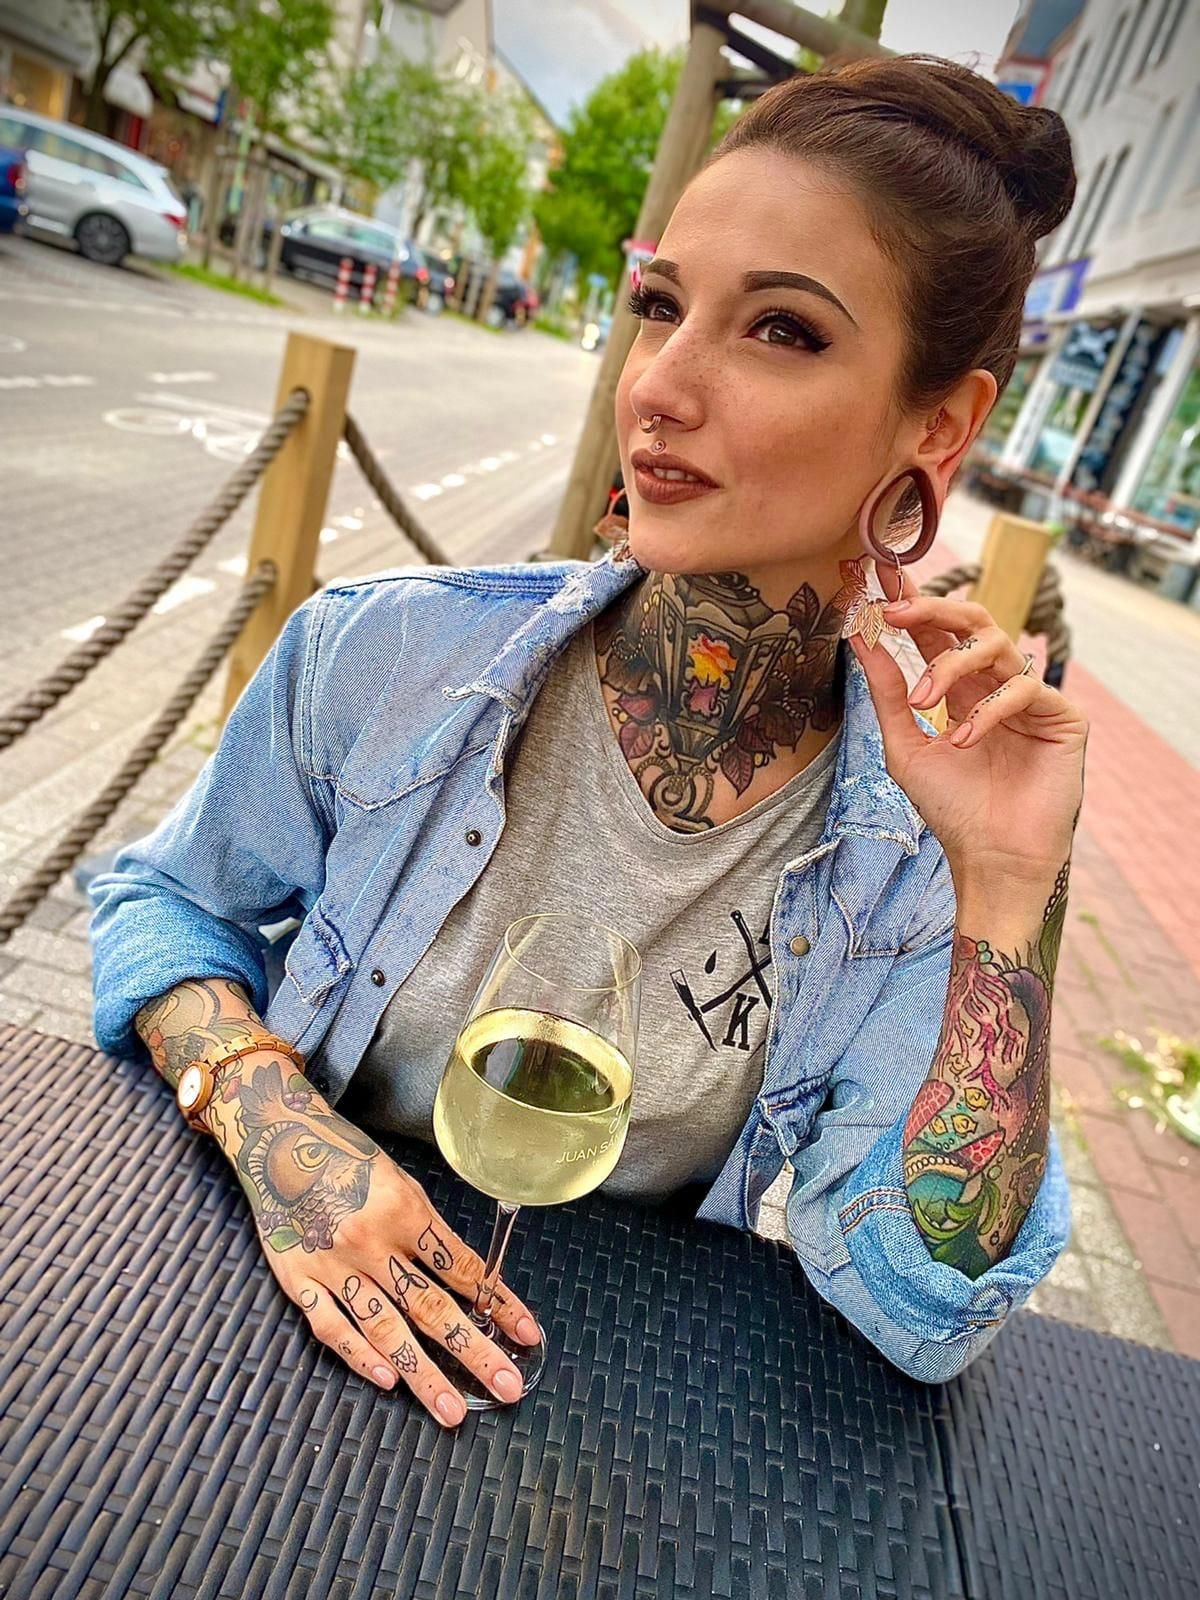 1628060863_689_Tattoos-Wildcat-Hoops-Perfection